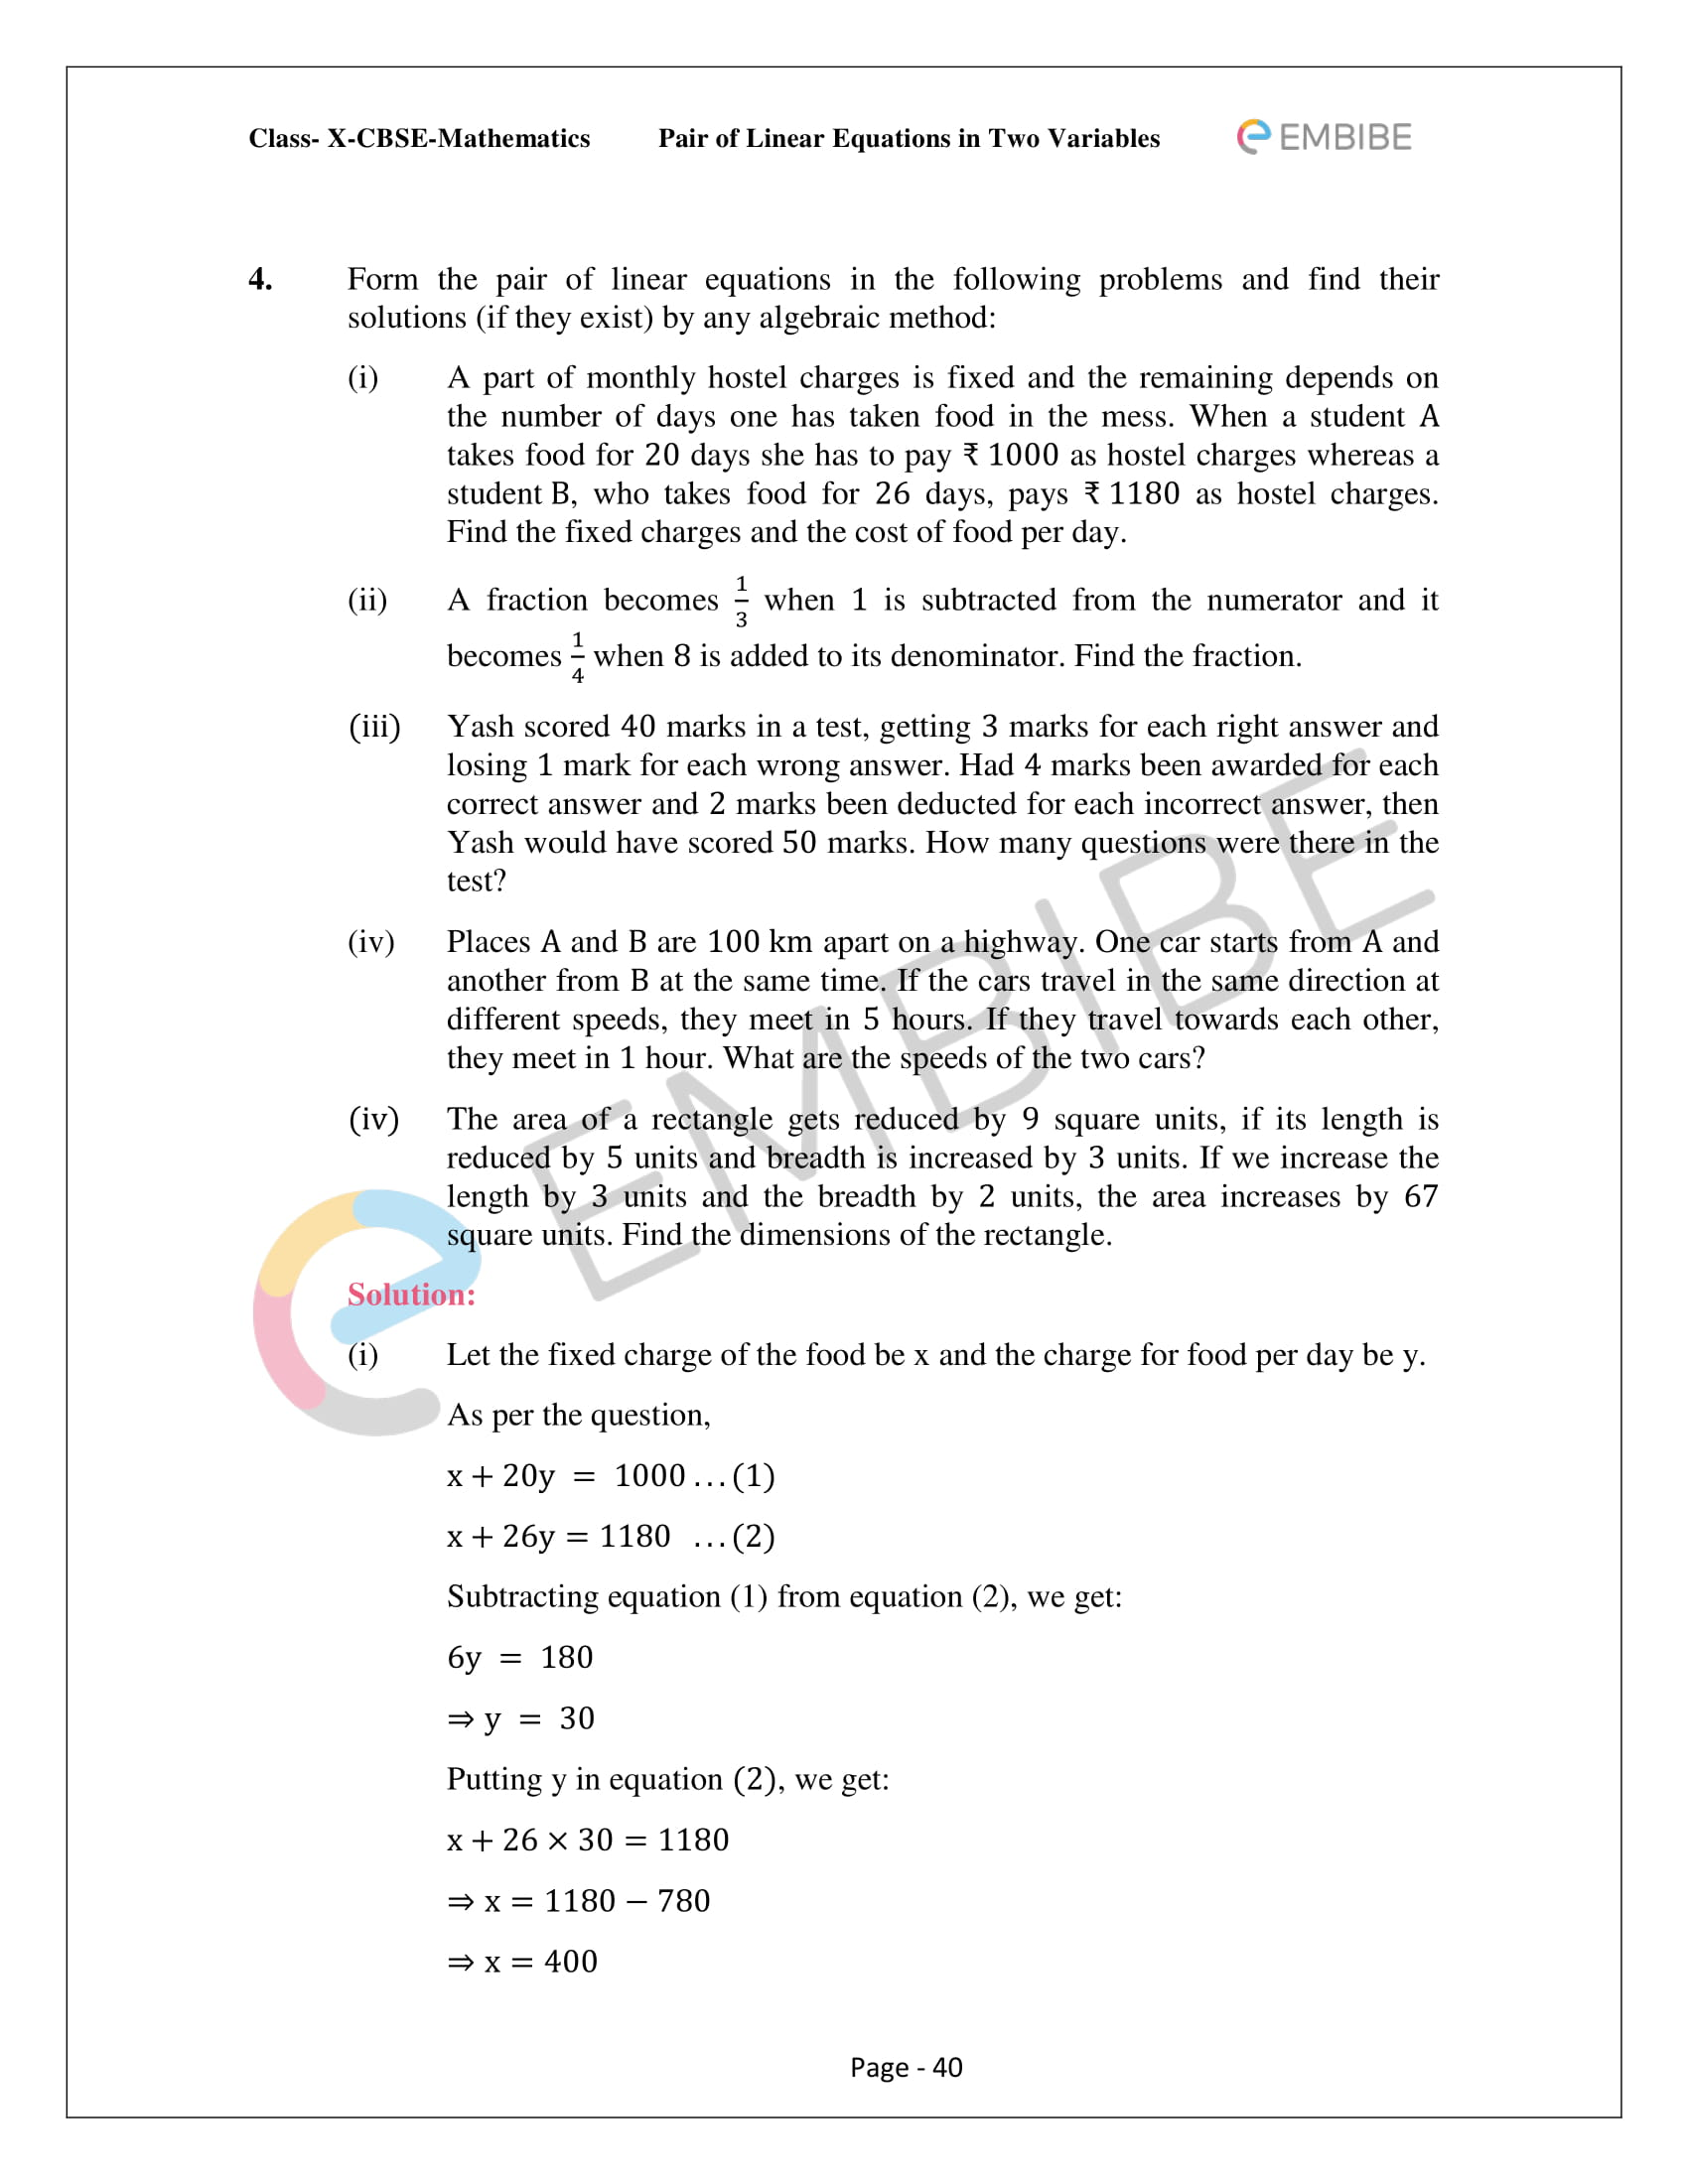 CBSE NCERT Solutions For Class 10 Maths Chapter 3 - Pair of Linear Equations In Two Variables - 40